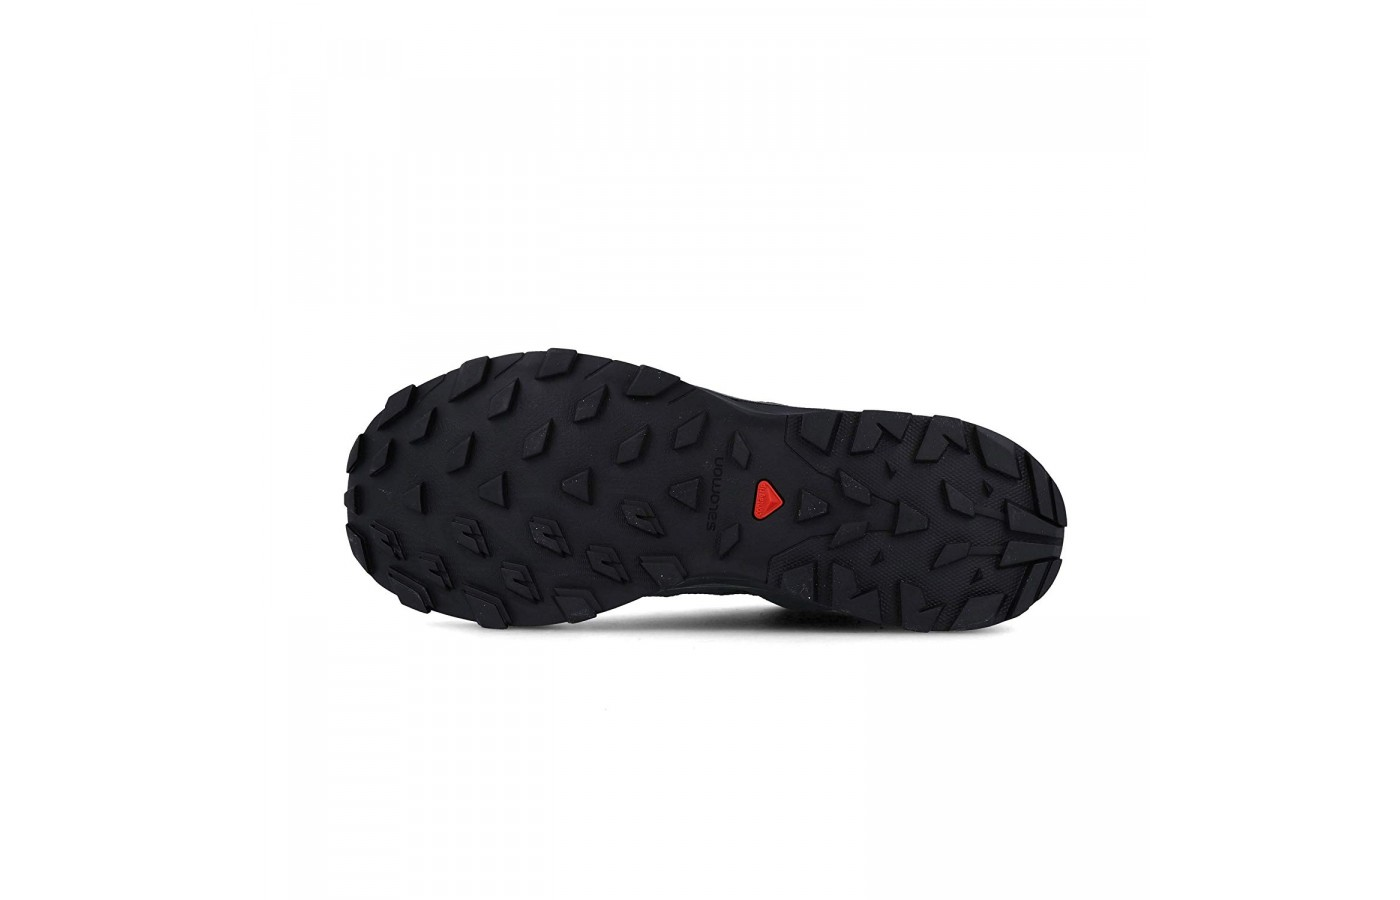 The rubber on the outsole gives you a good grip on the ground.